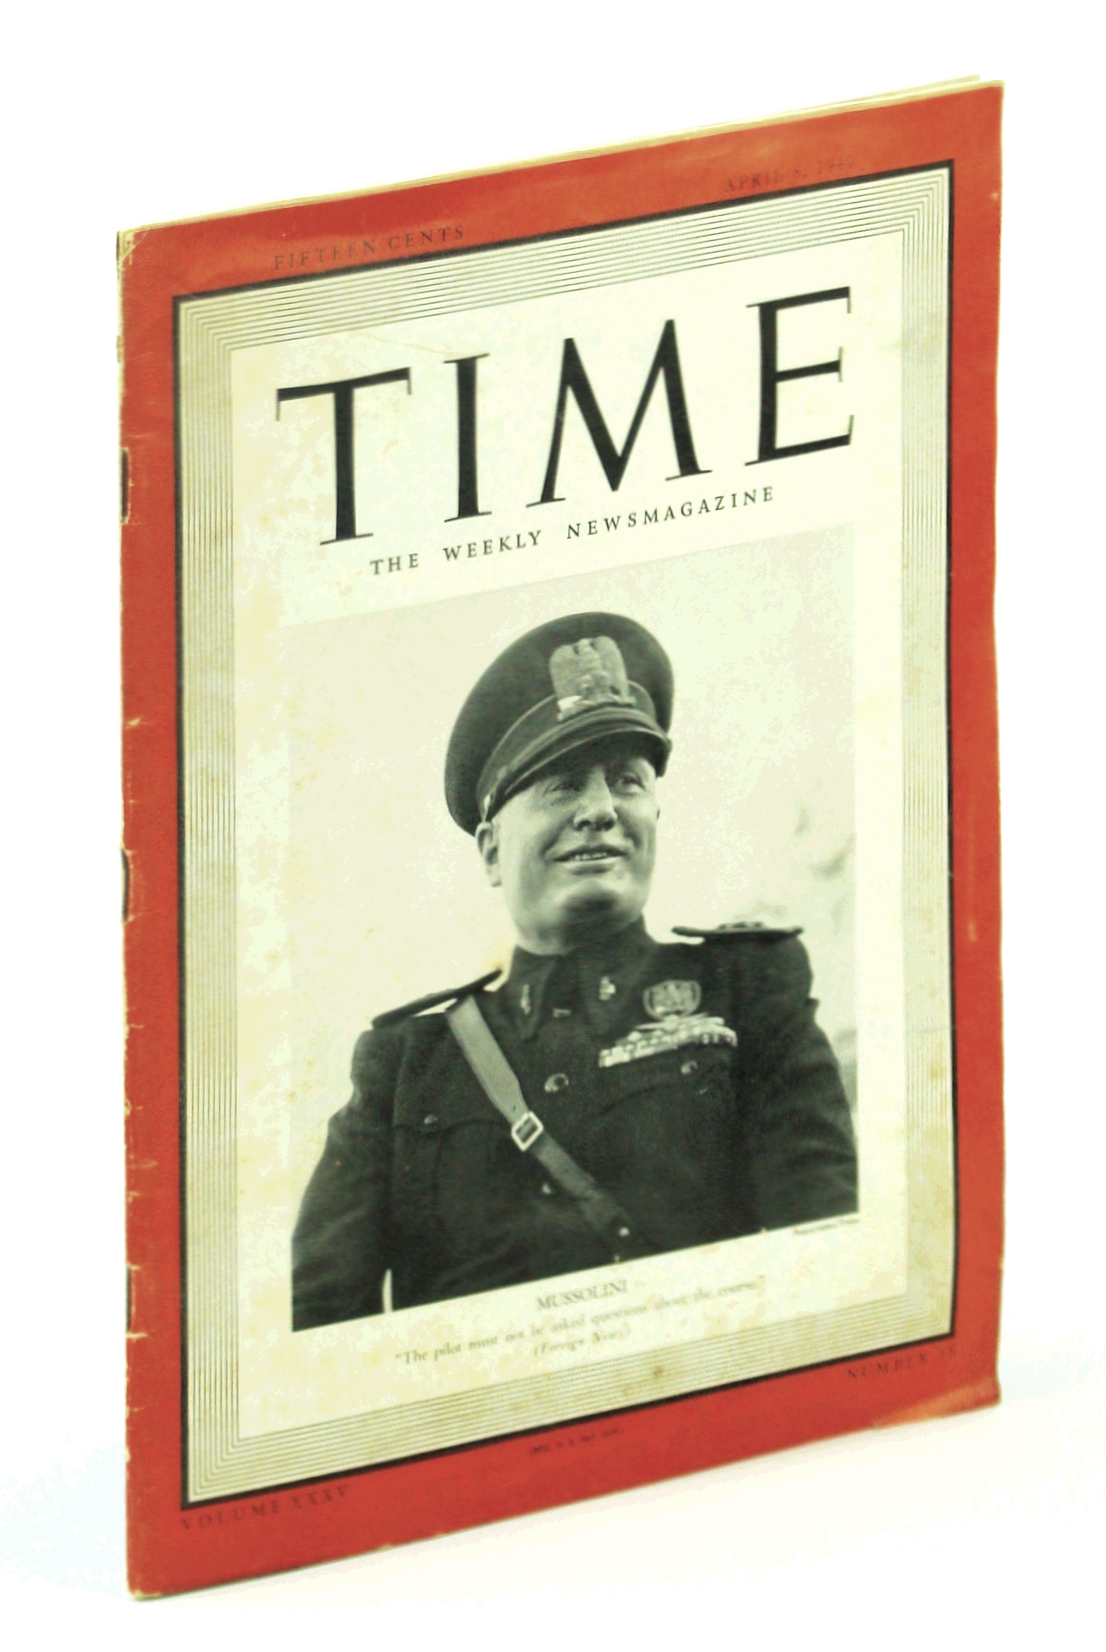 Image for Time, the Weekly Newsmagazine : April 8, 1940 Volume XXXV Number 15